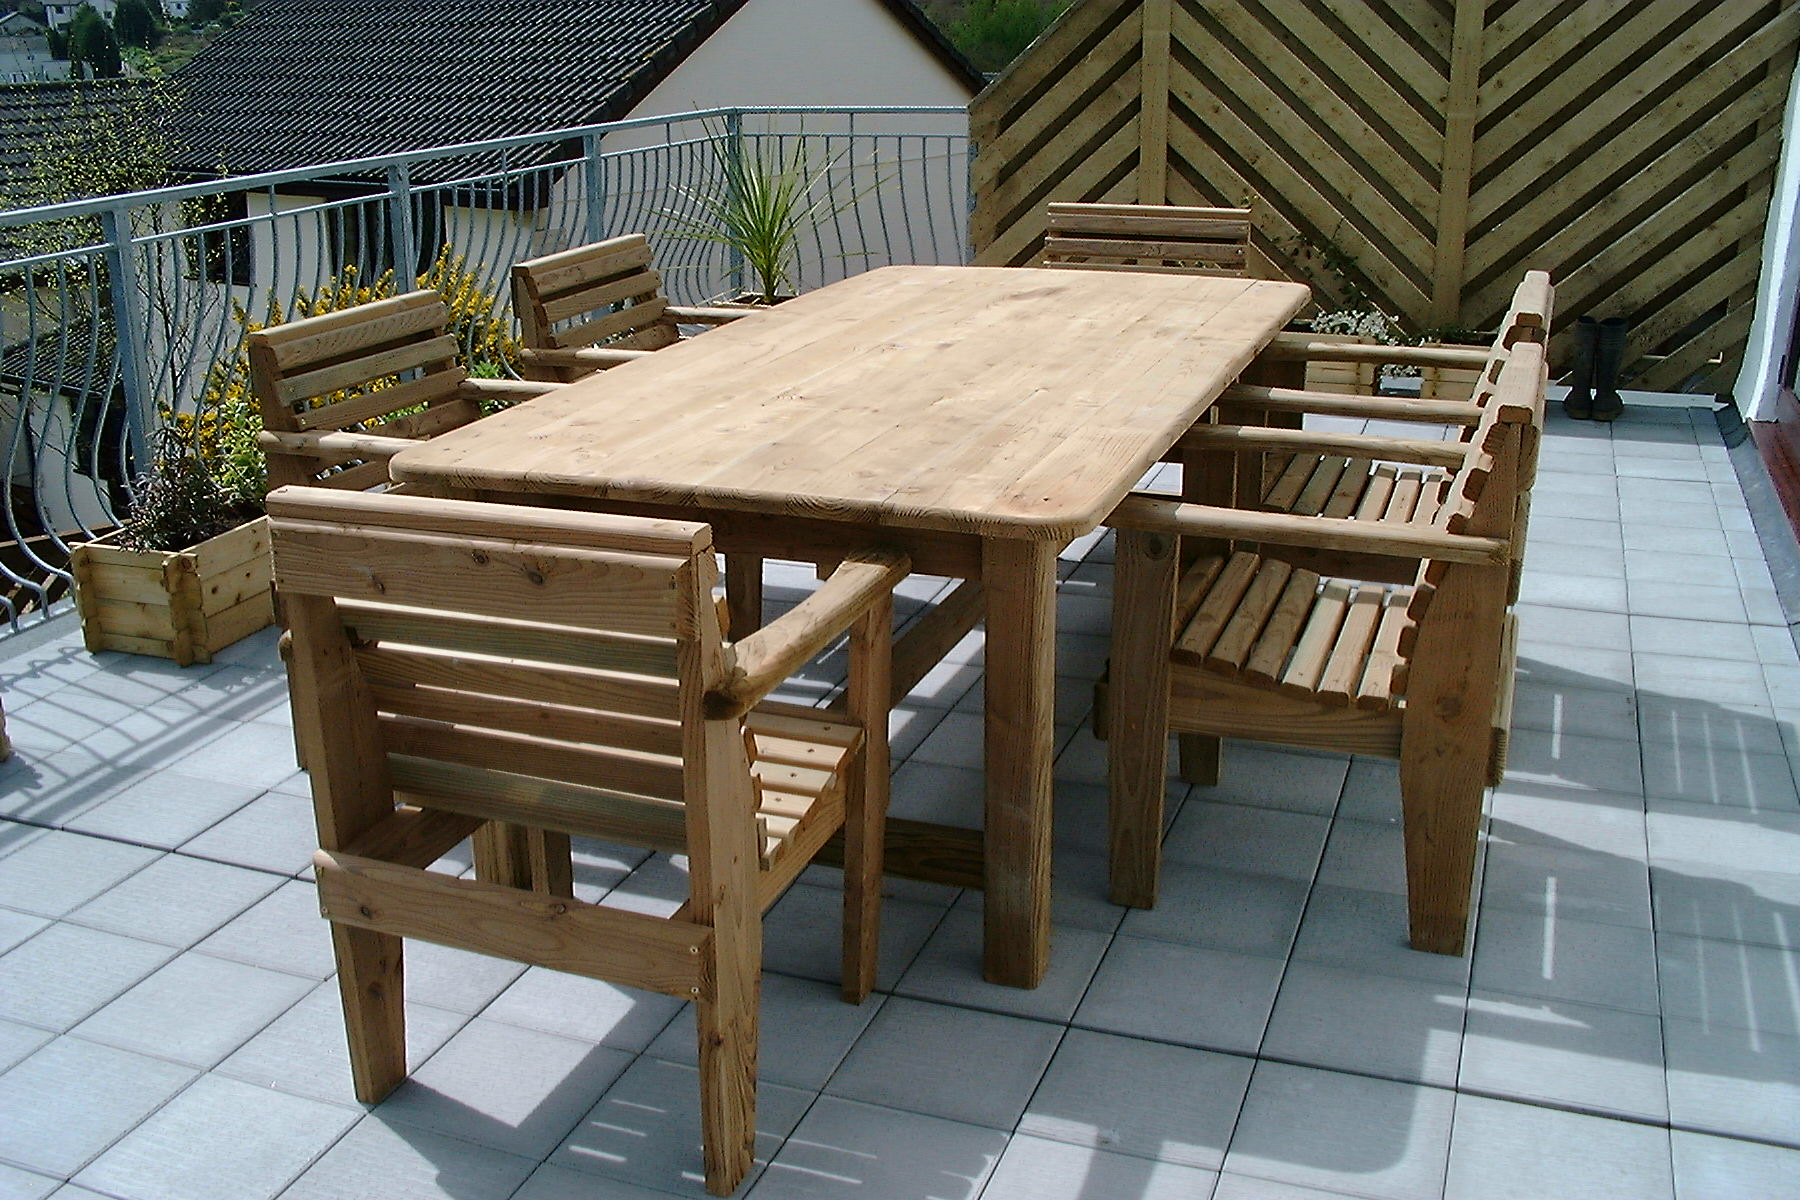 garden furniture made from decking been done on demand of a party - Garden Furniture Decking